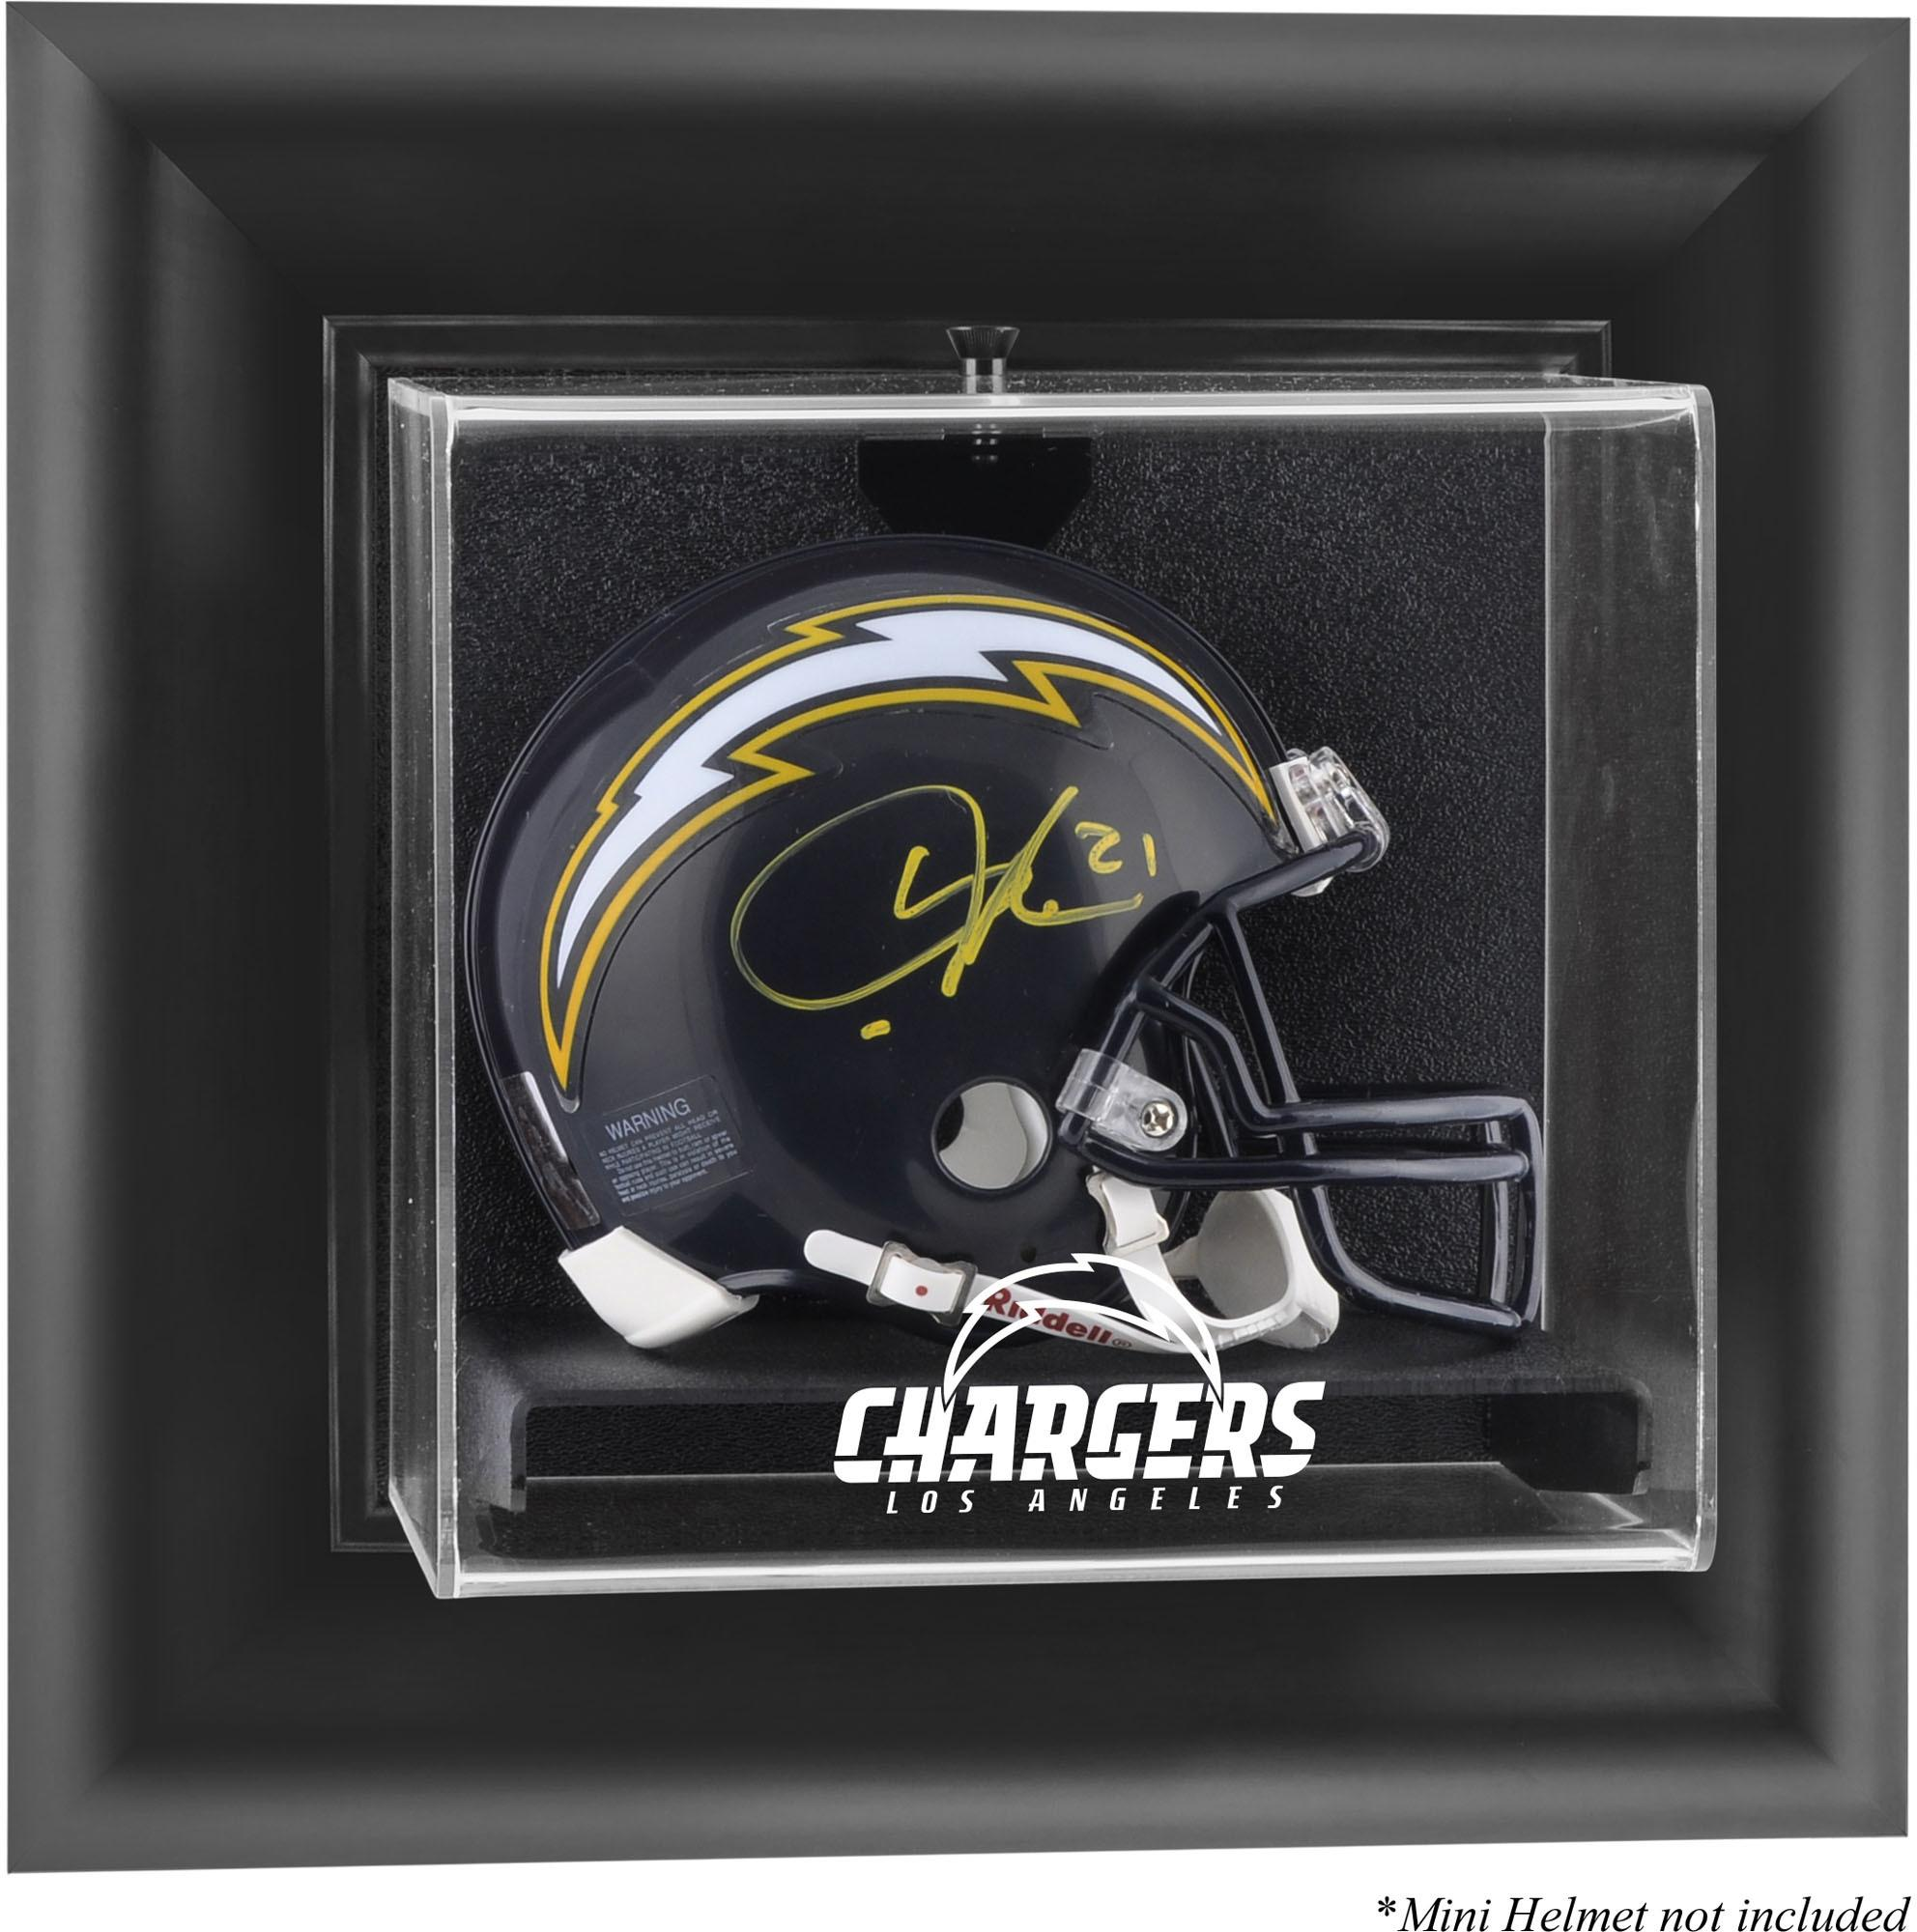 Los Angeles Chargers Black Framed Wall-Mounted Mini Helmet Display Case